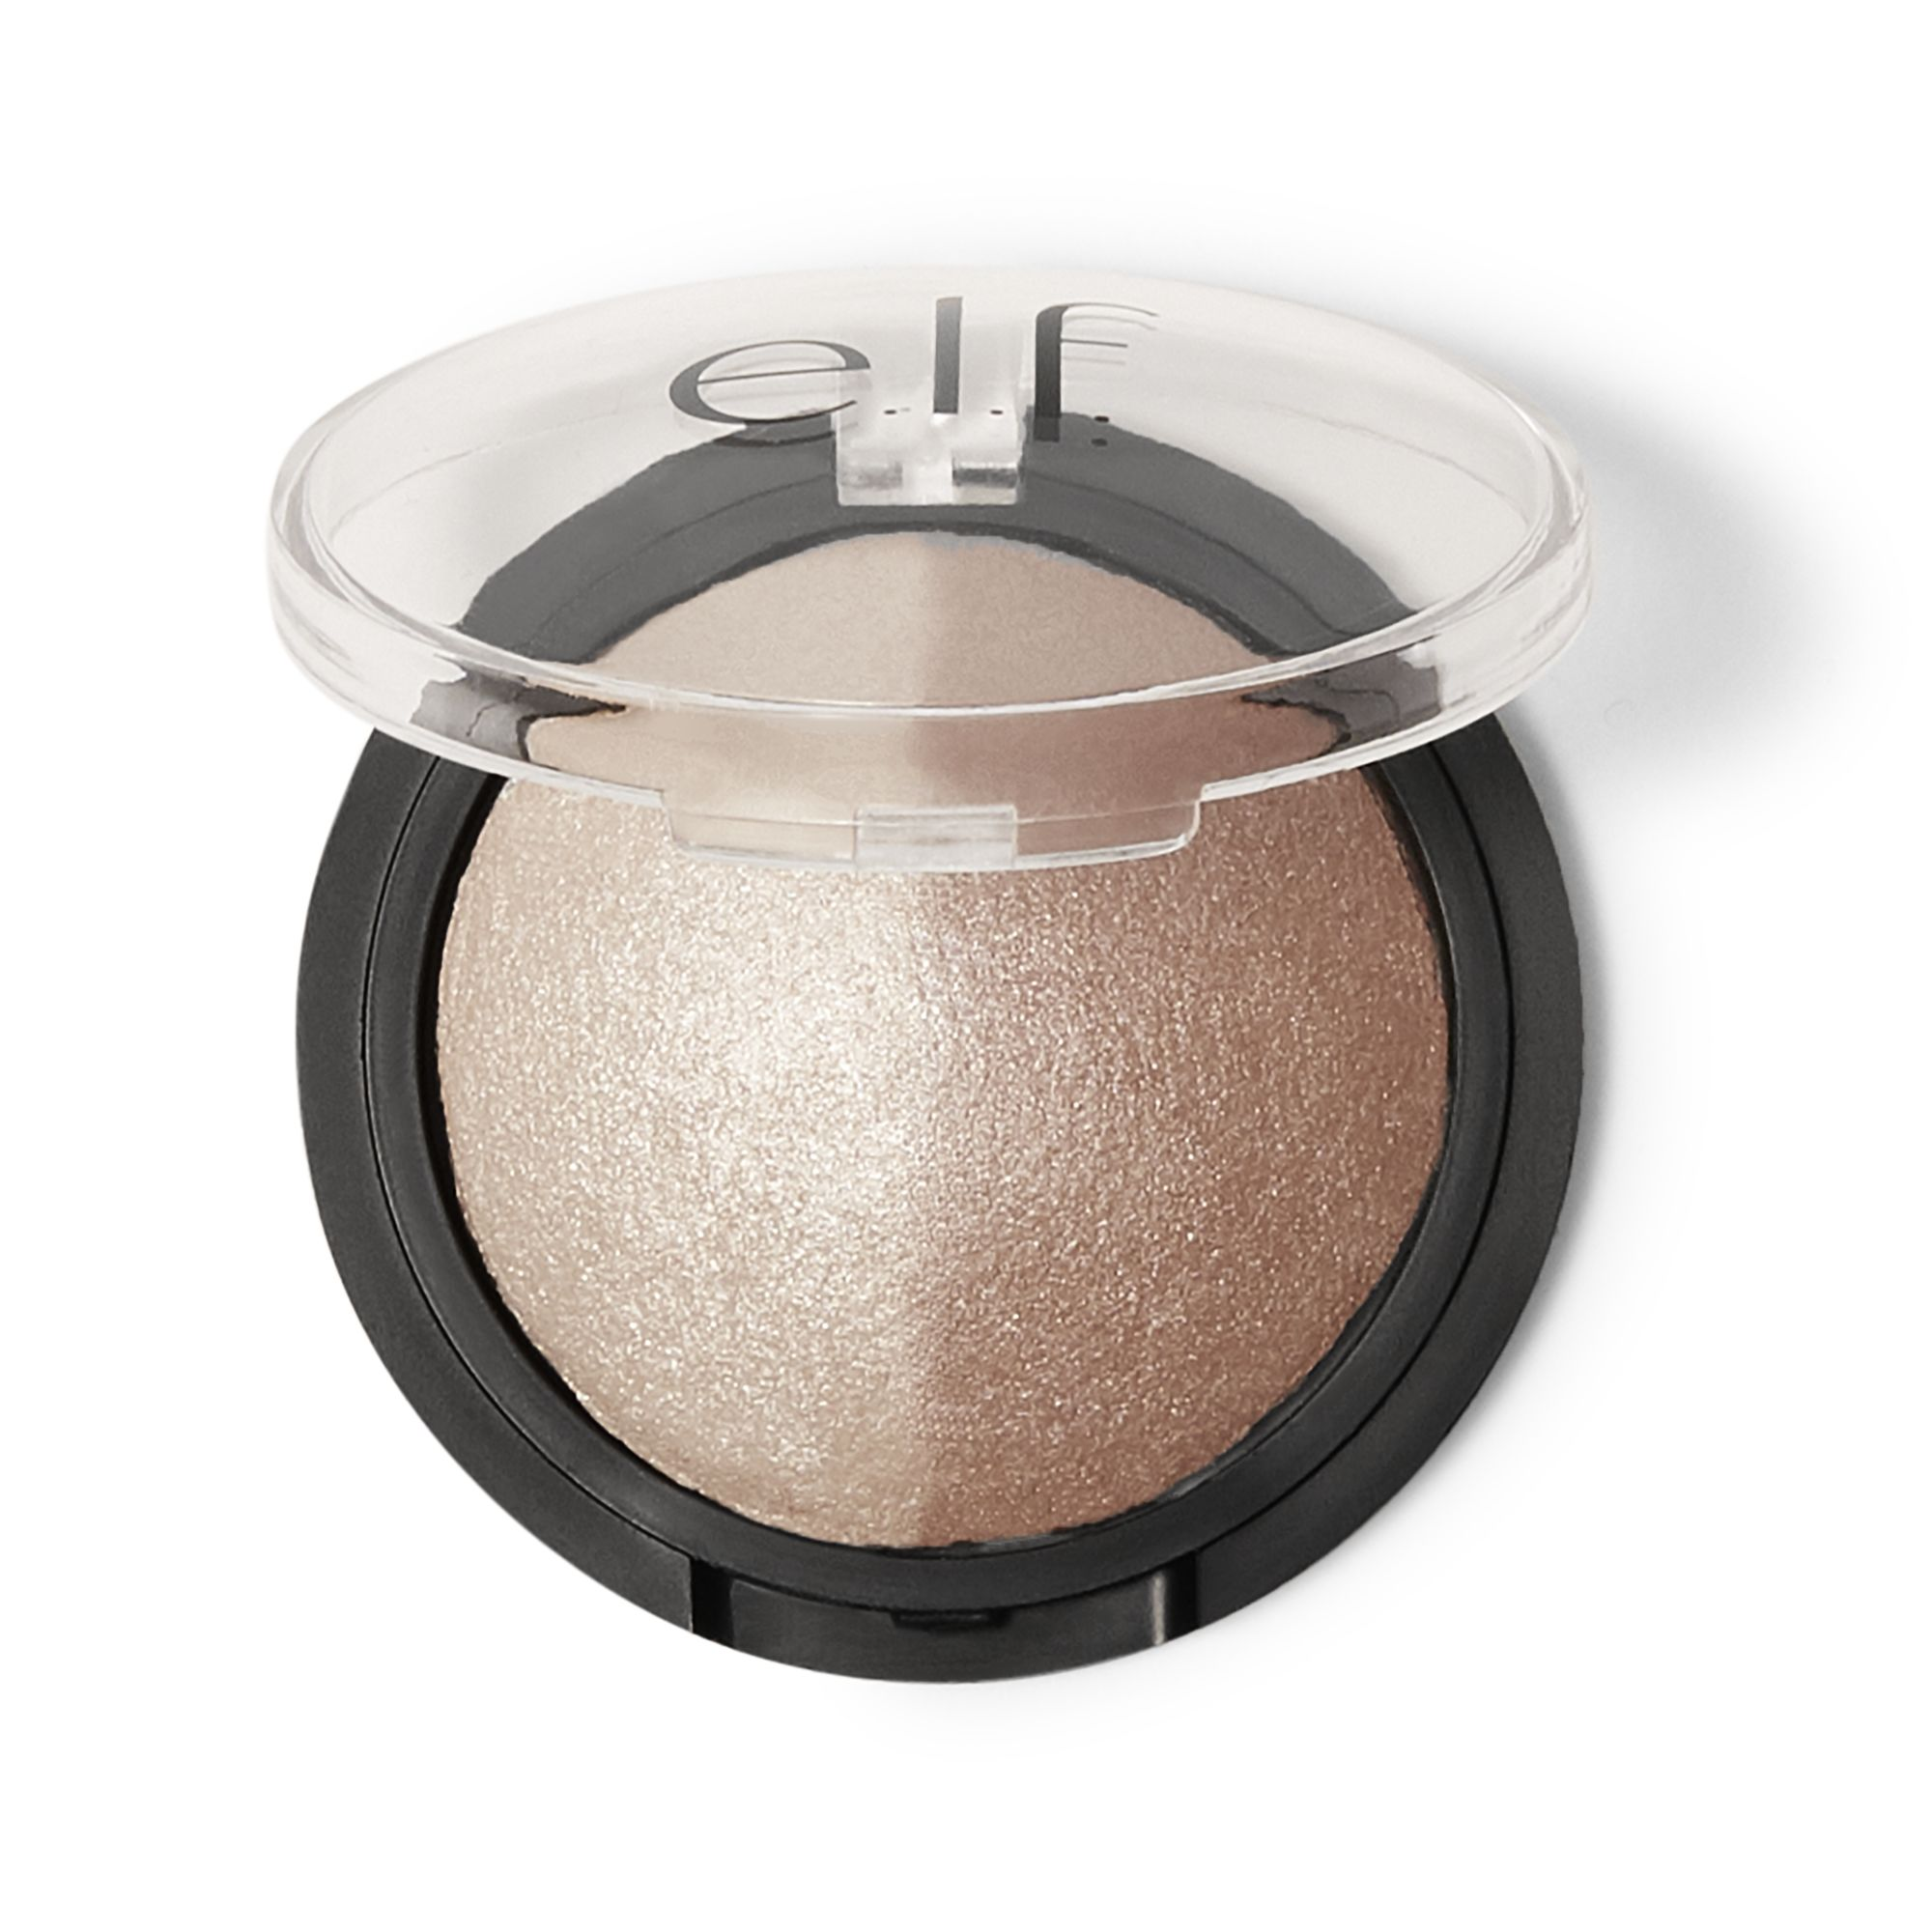 (3 Pack) e.l.f. Baked Highlighter & Bronzer - Bronzed Glow